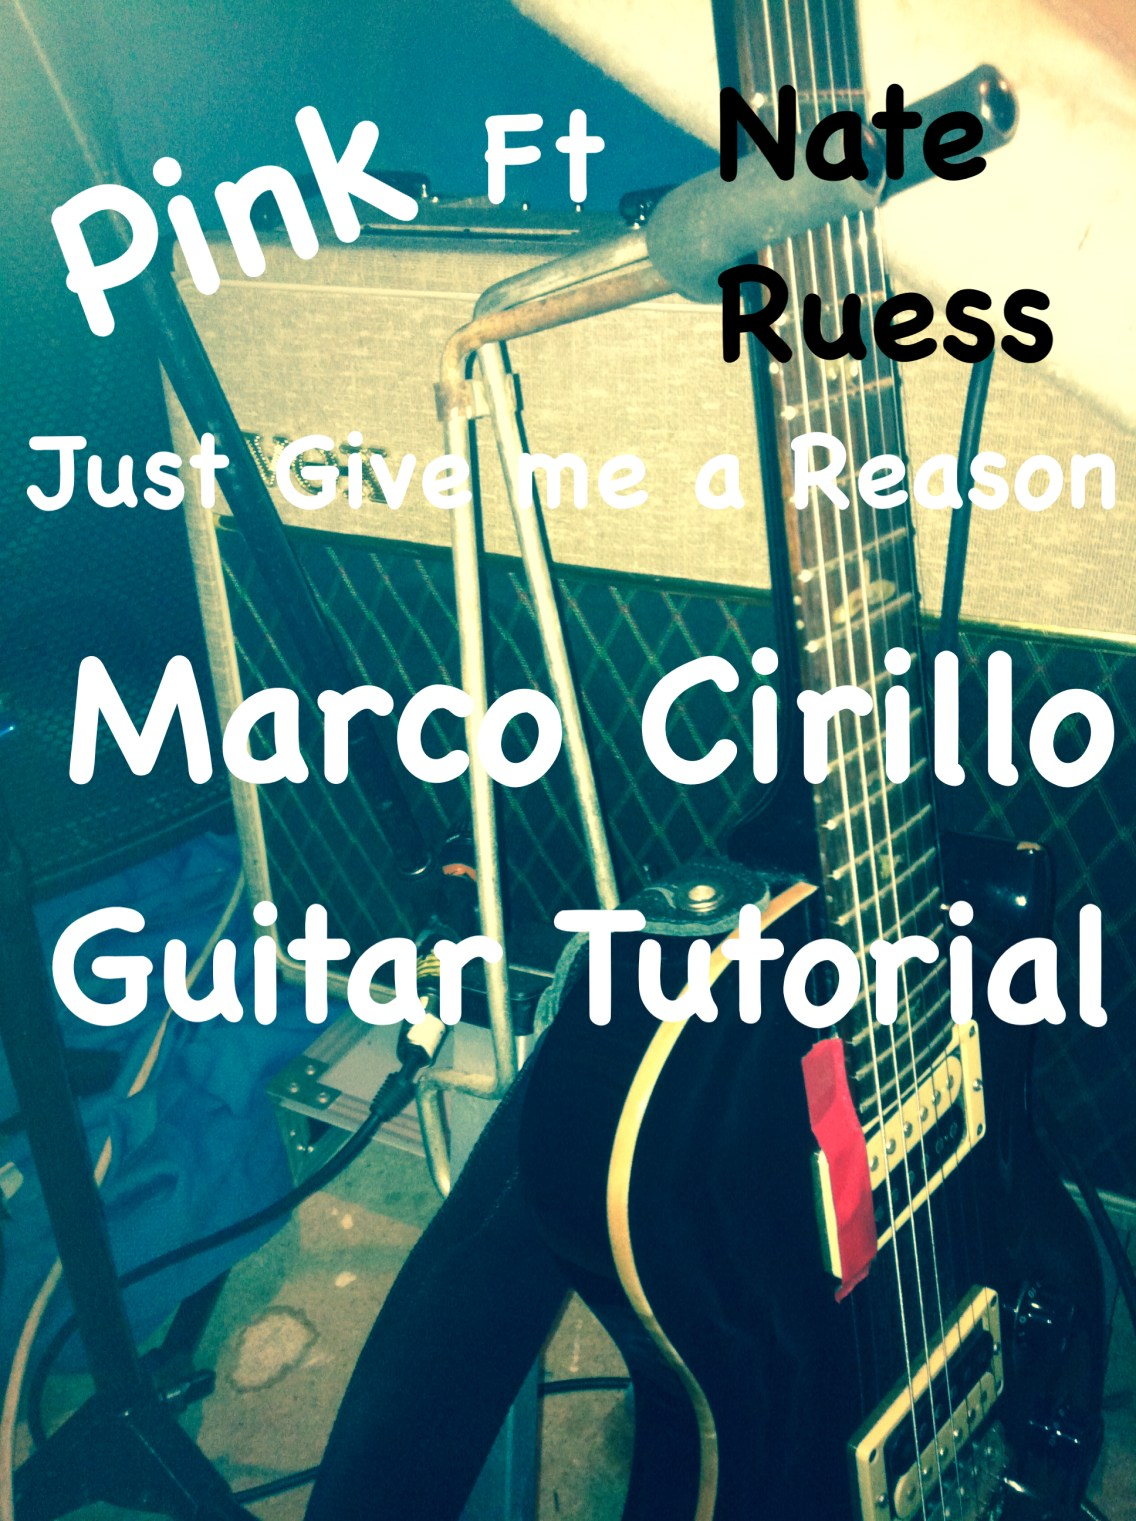 pink ft nate ruess just give me a reason guitar lesson chords and tab marco cirillo london. Black Bedroom Furniture Sets. Home Design Ideas